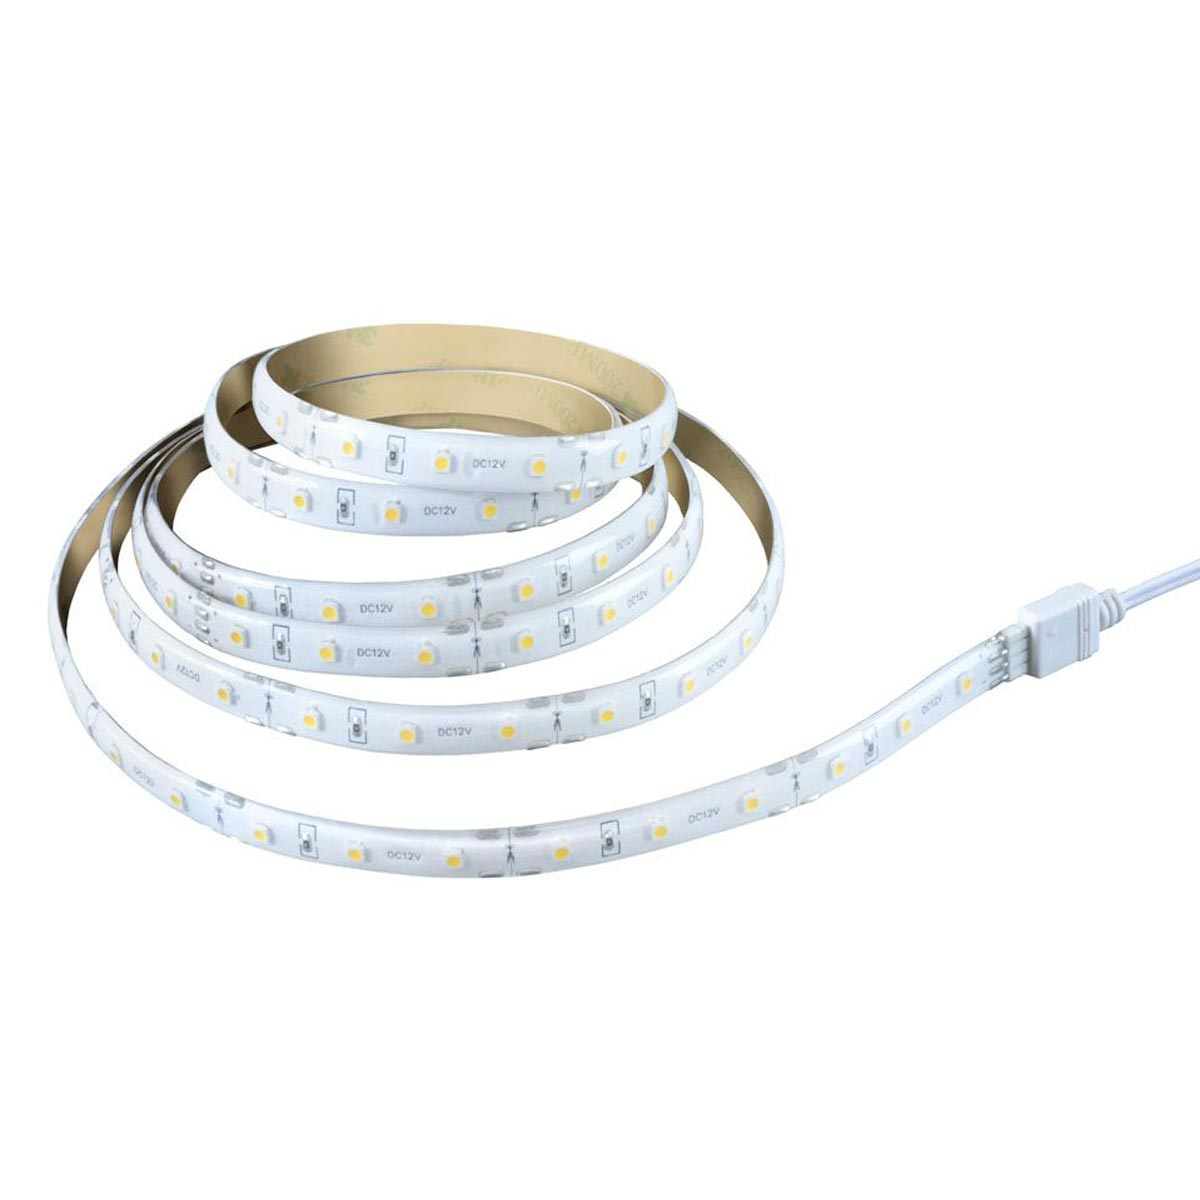 6 ft. Warm White Flexible & Cuttable Plug-in LED Strip Tape Light